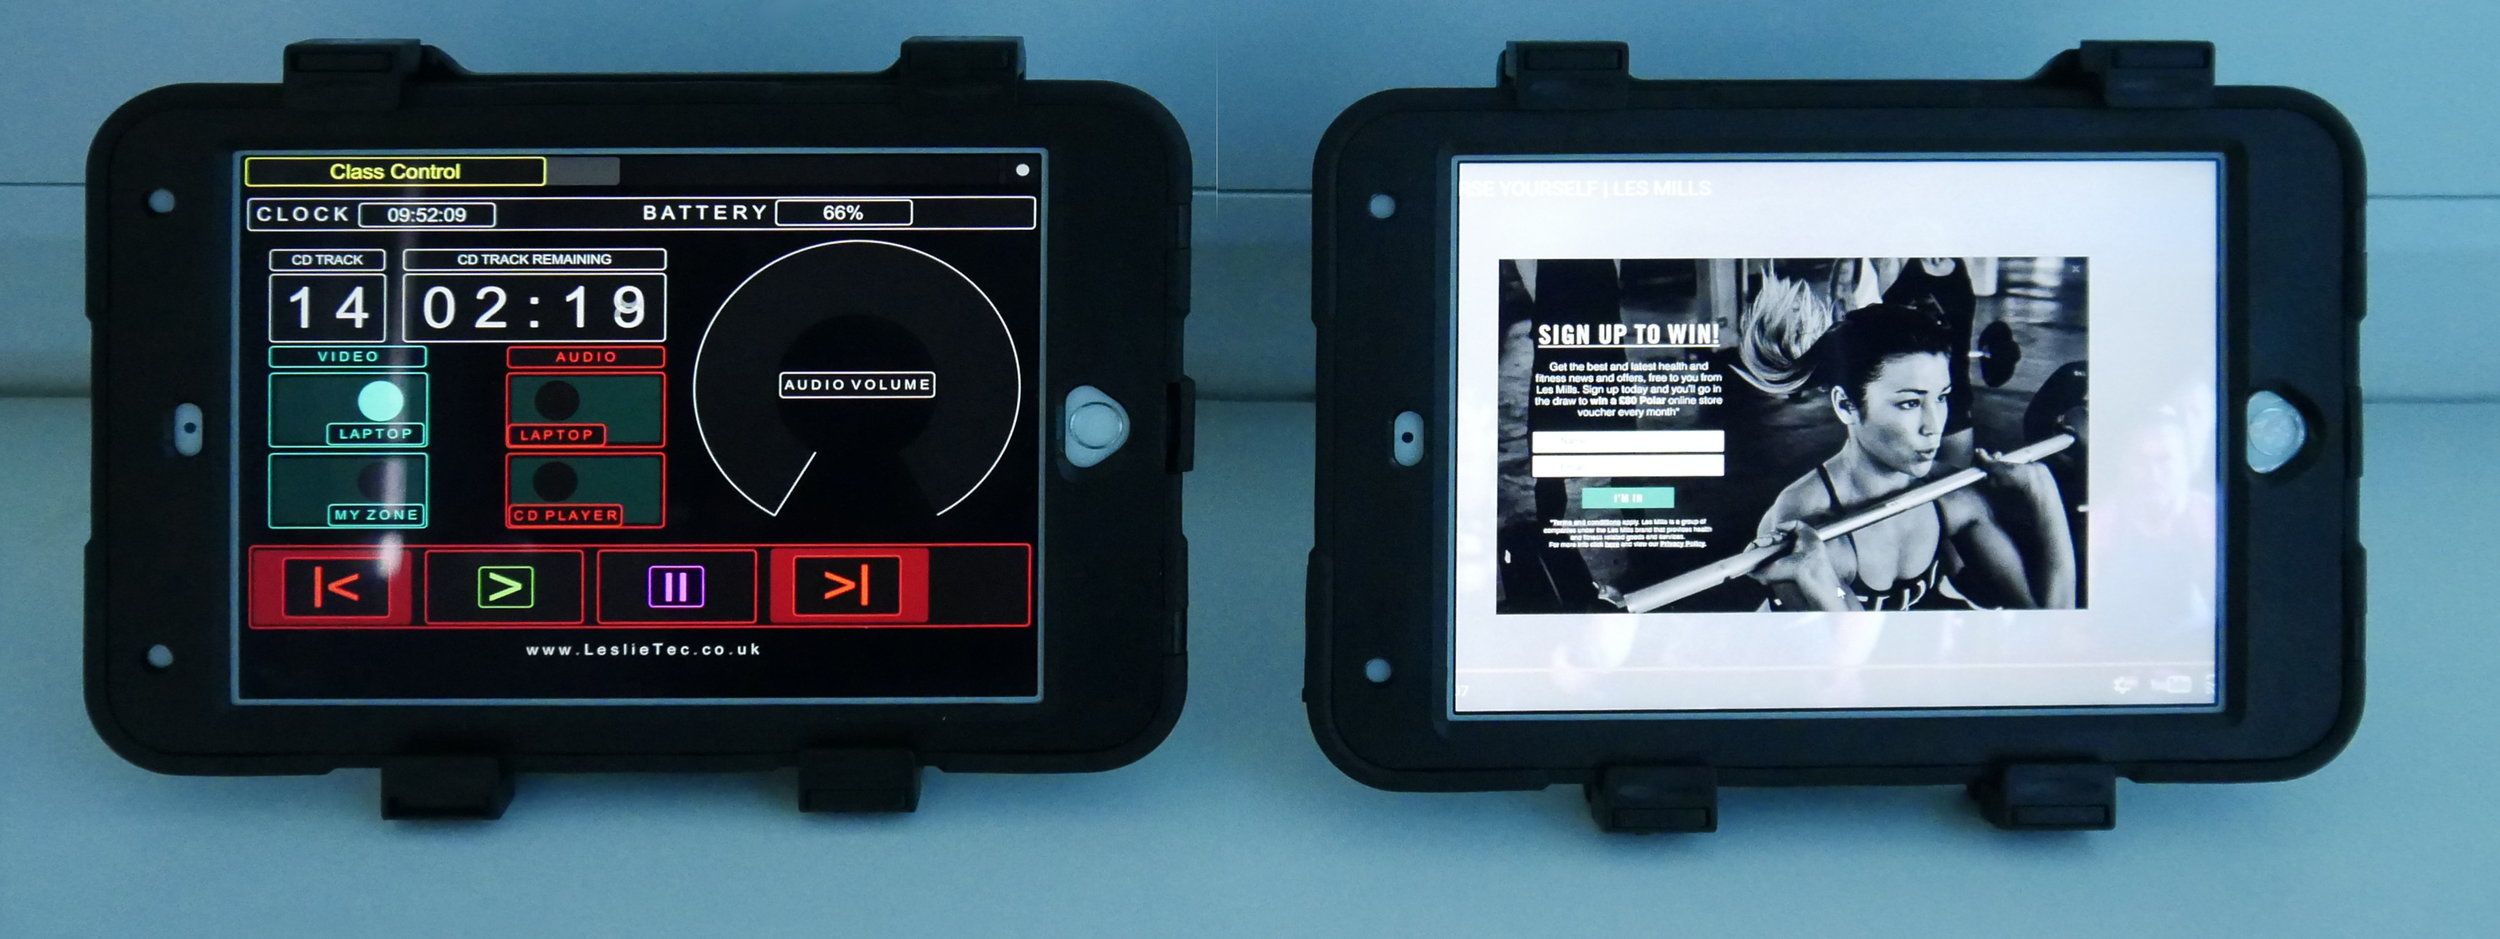 Bespoke Control Interfaces Software development for Tablet and Mobile Devices